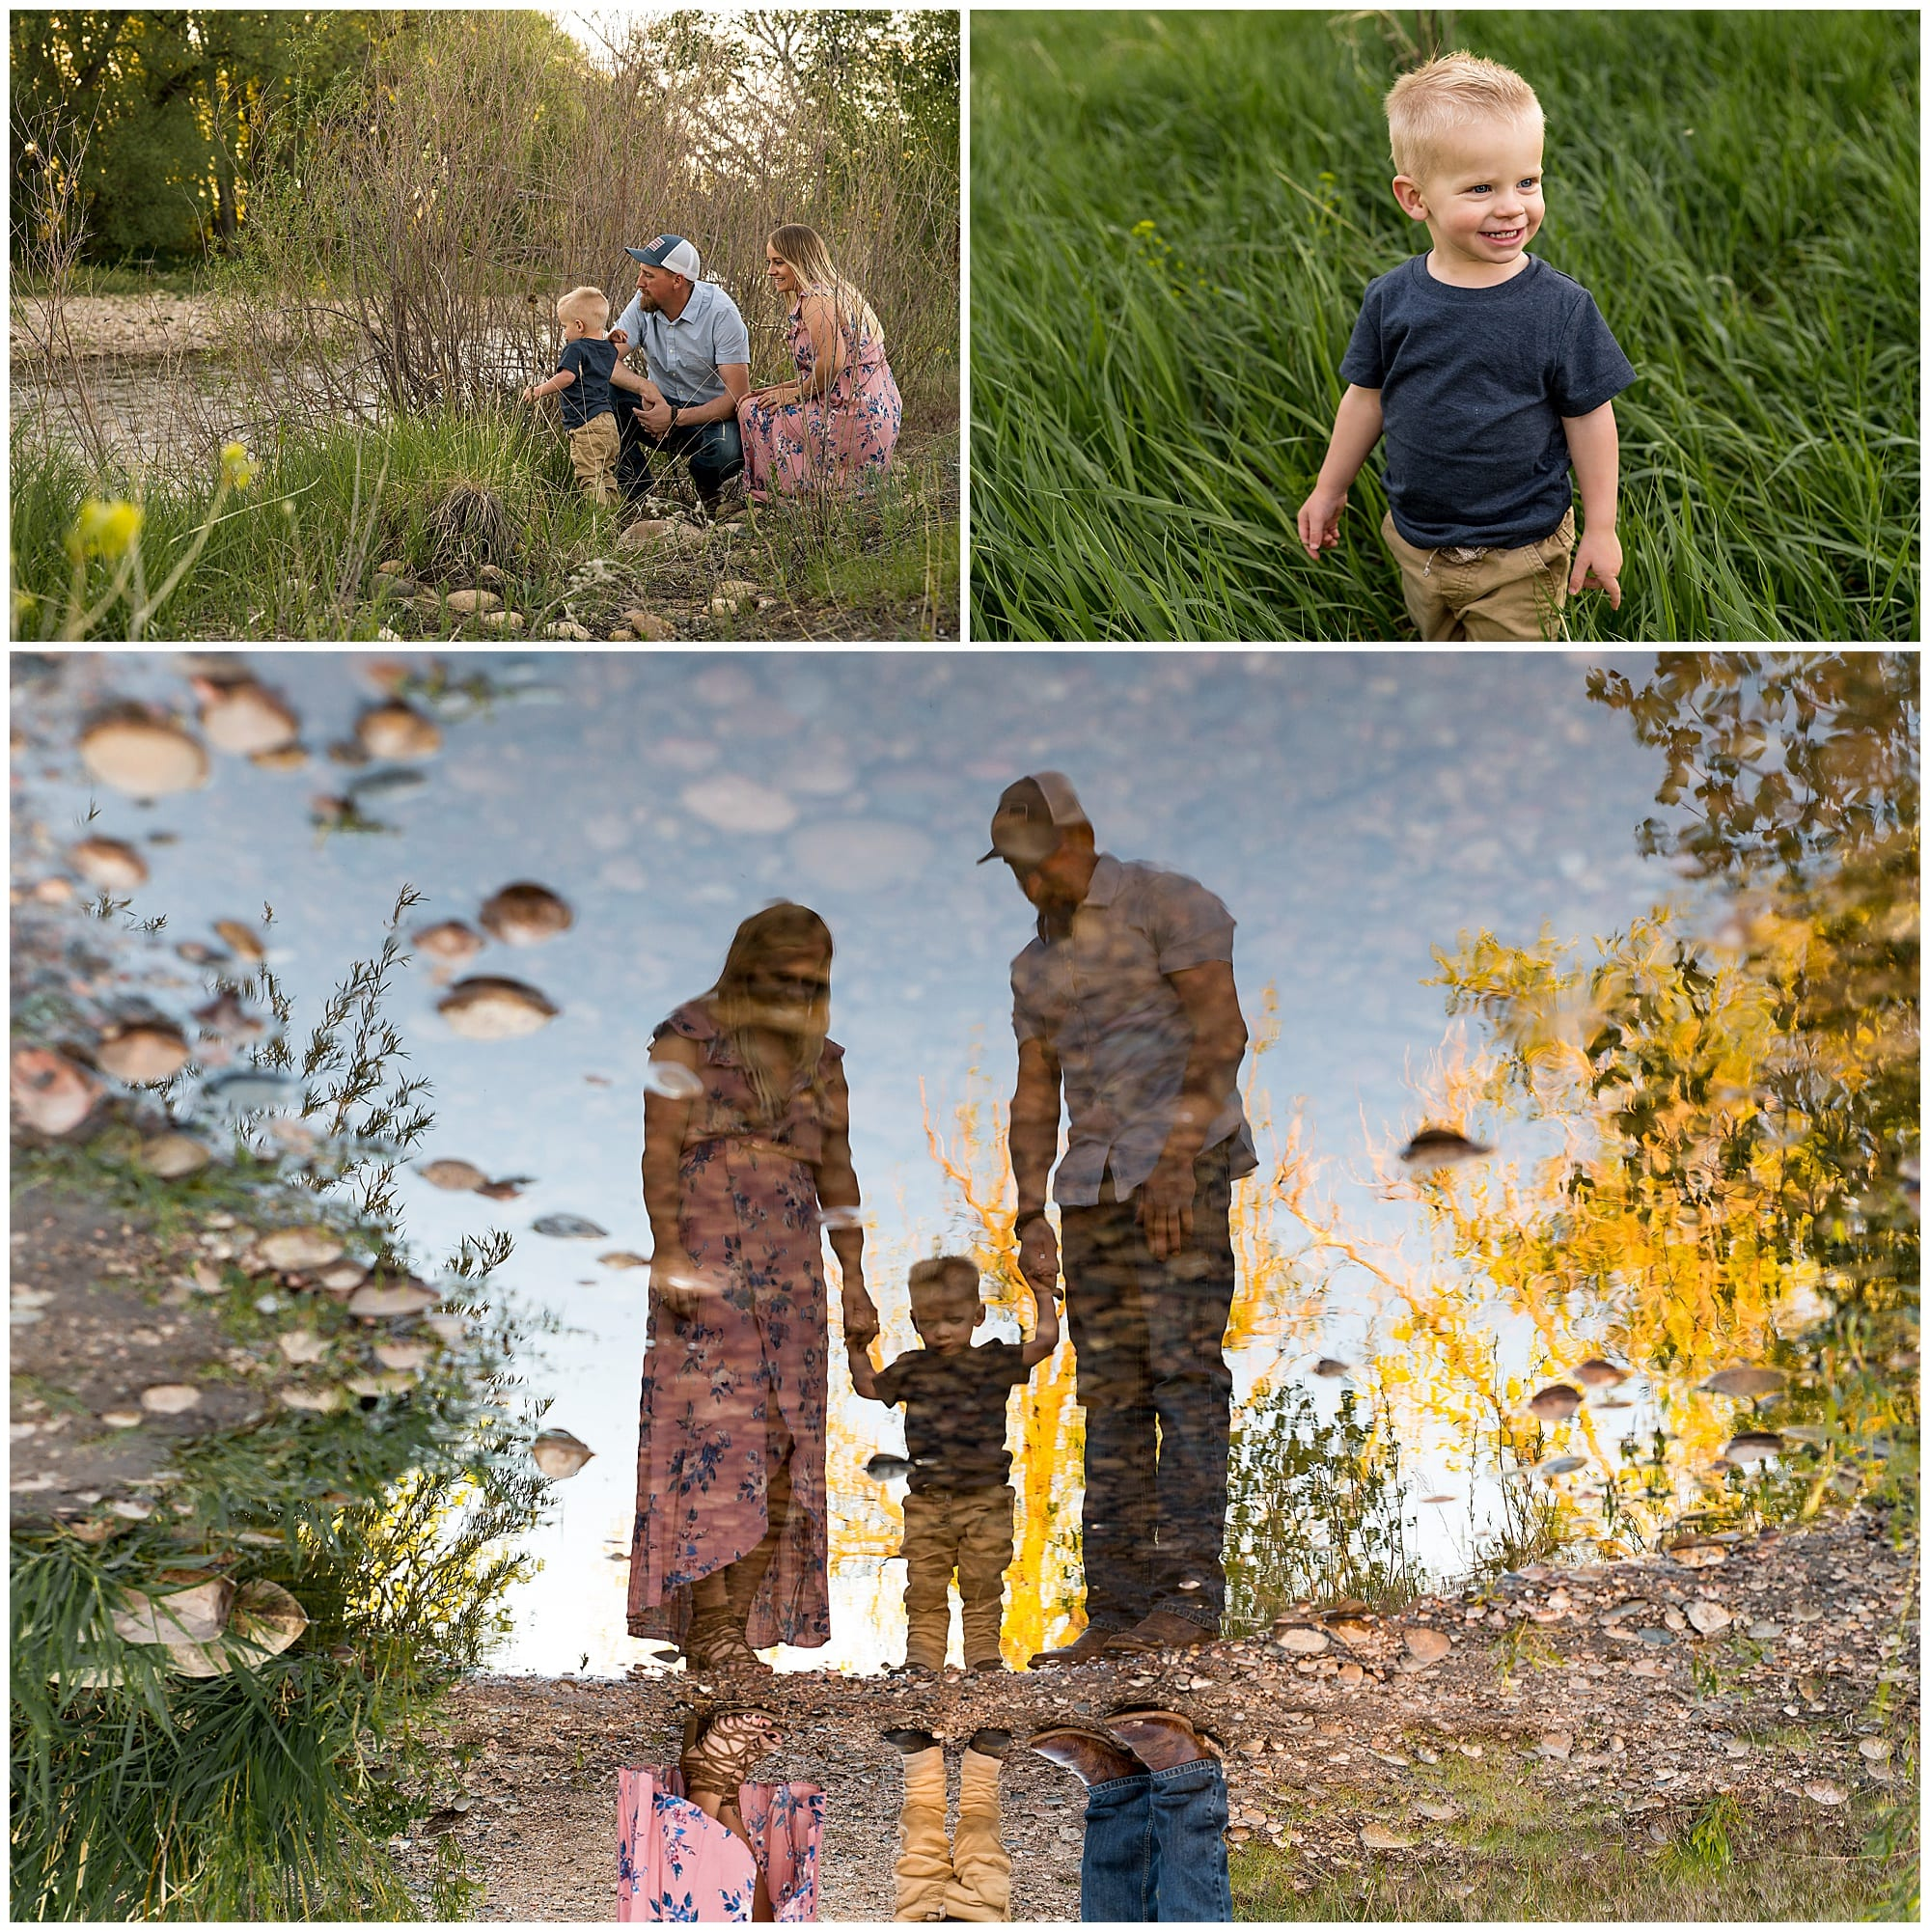 Pilkington family portrait session, fort collins field at sunset